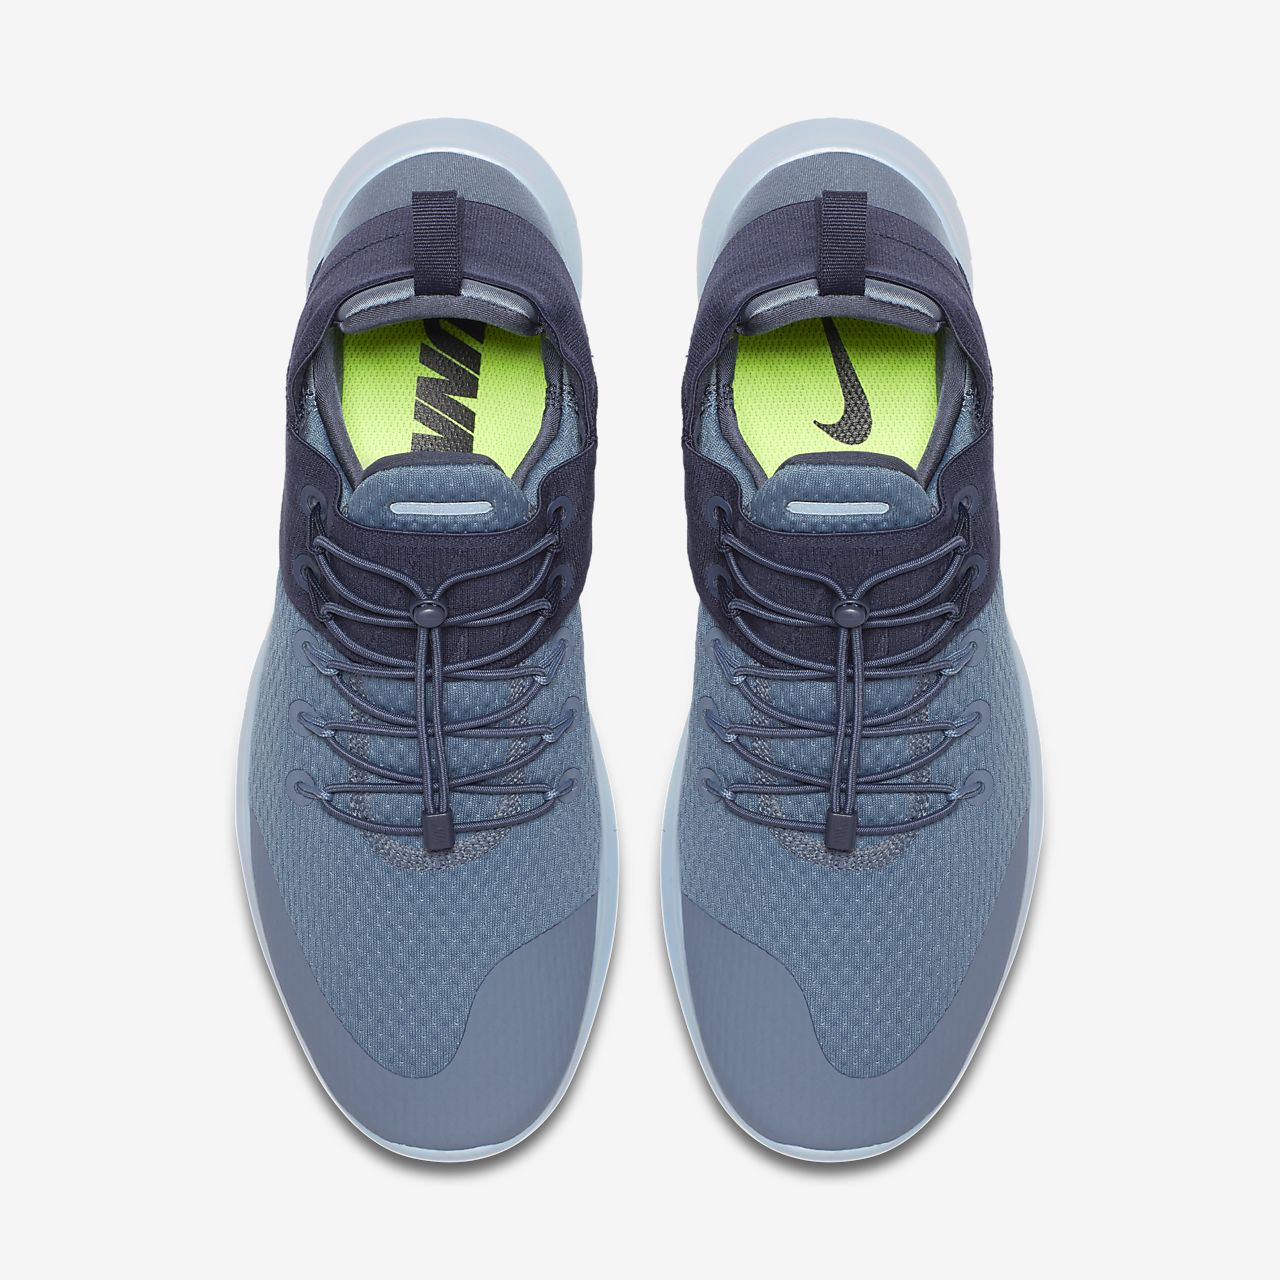 Nike Free Rn Commuter Running Shoes Black And White